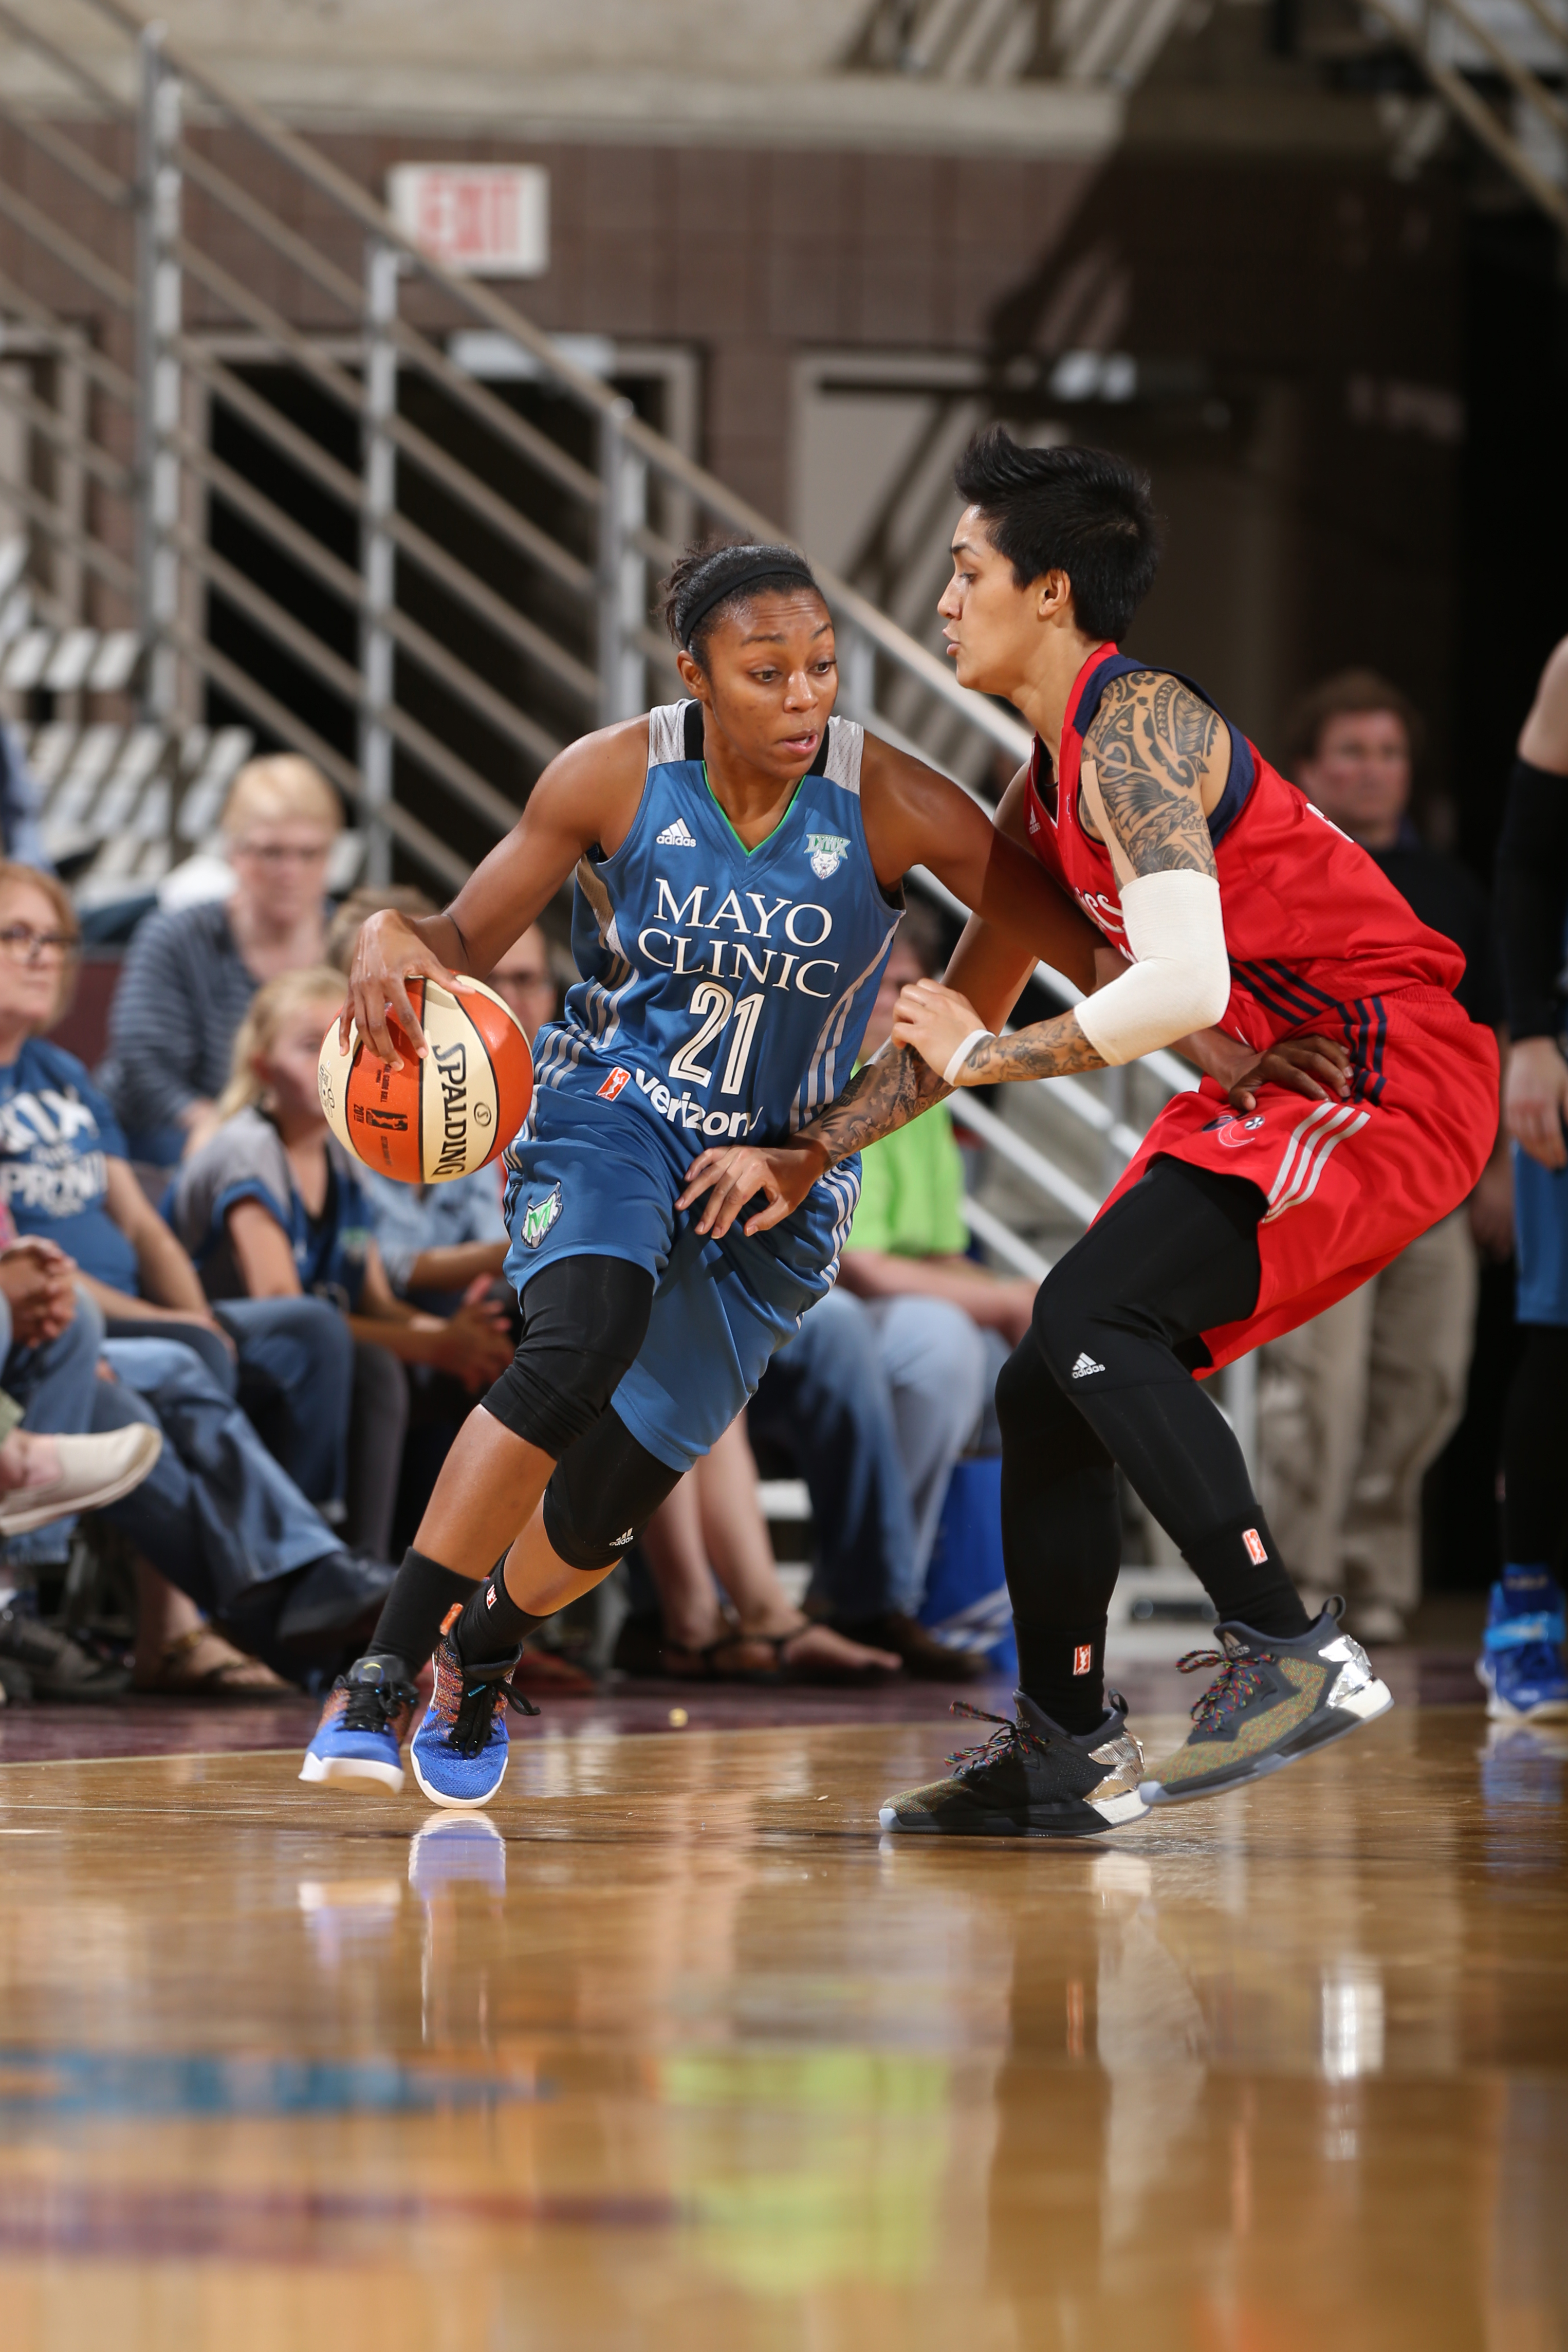 ROCHESTER, MN - MAY 8: Renee Montgomery #21 of the Minnesota Lynx drives against Lia Galdeira #3 of the Washington Mystics during the preseason game on May 8, 2016 at the Mayo Civic Center in Rochester, Minnesota. NOTE TO USER: User expressly acknowledges and agrees that, by downloading and or using this Photograph, user is consenting to the terms and conditions of the Getty Images License Agreement. Mandatory Copyright Notice: Copyright 2016 NBAE (Photo by David Sherman/NBAE via Getty Images)